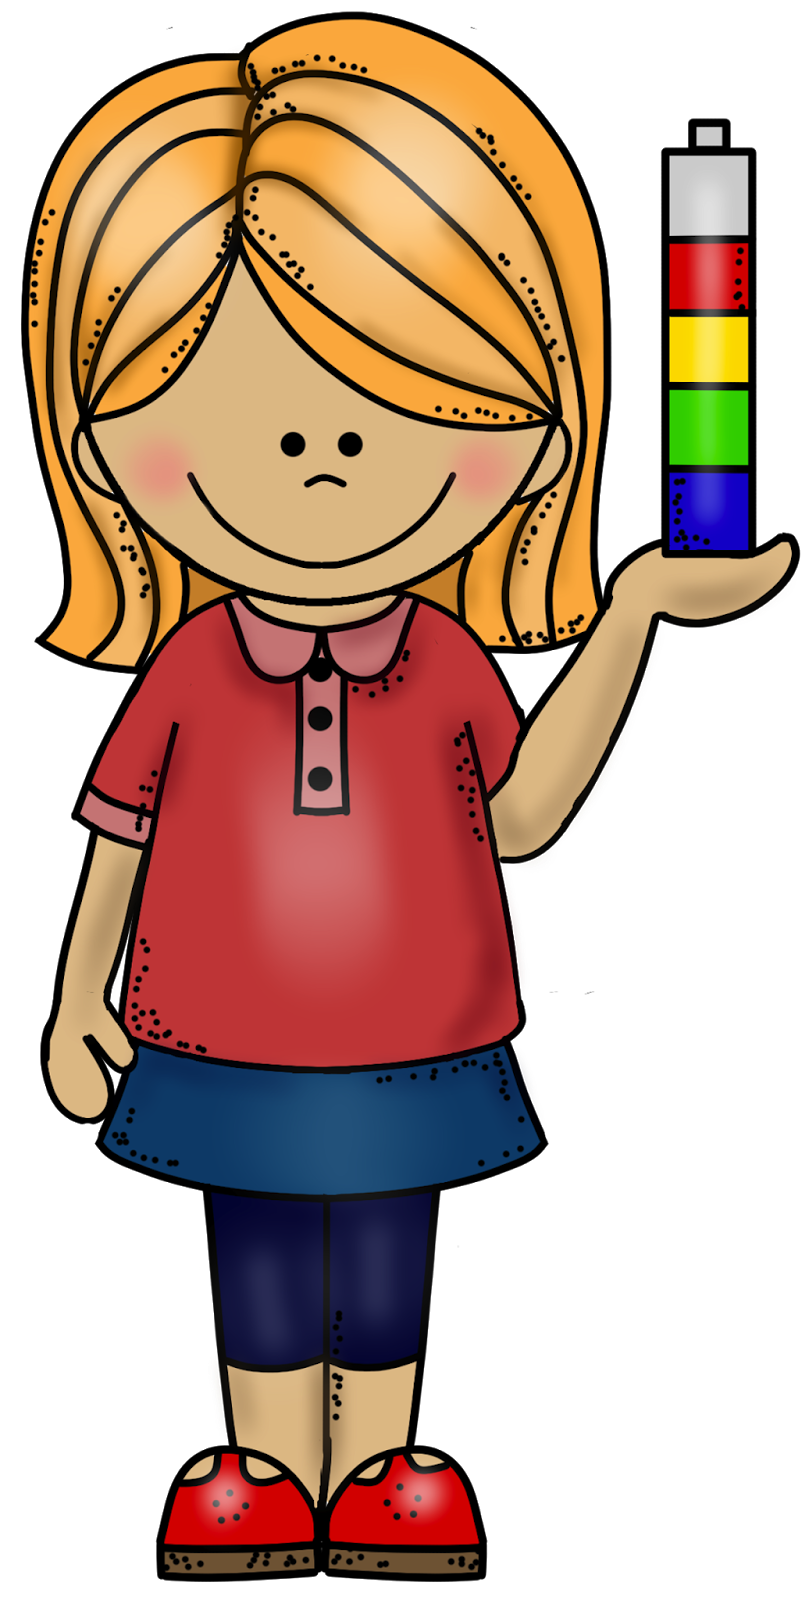 Notebook clipart math addition. Concepts assessments number sense